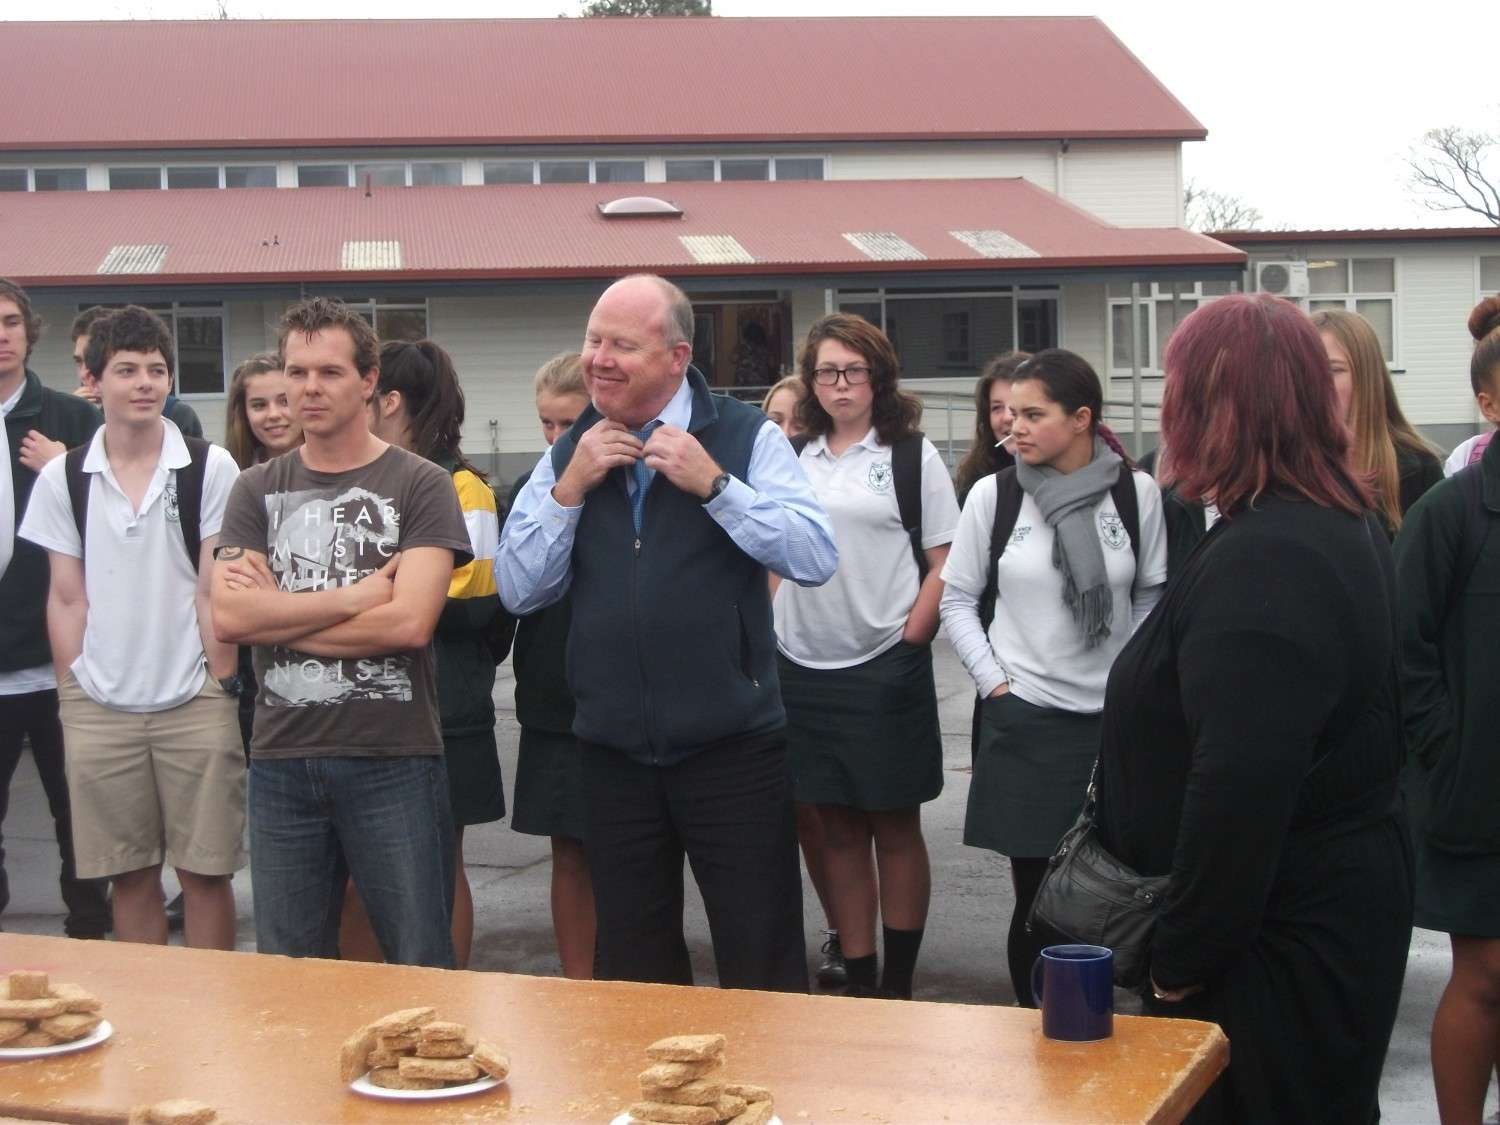 Eating competition - Staff vs Students